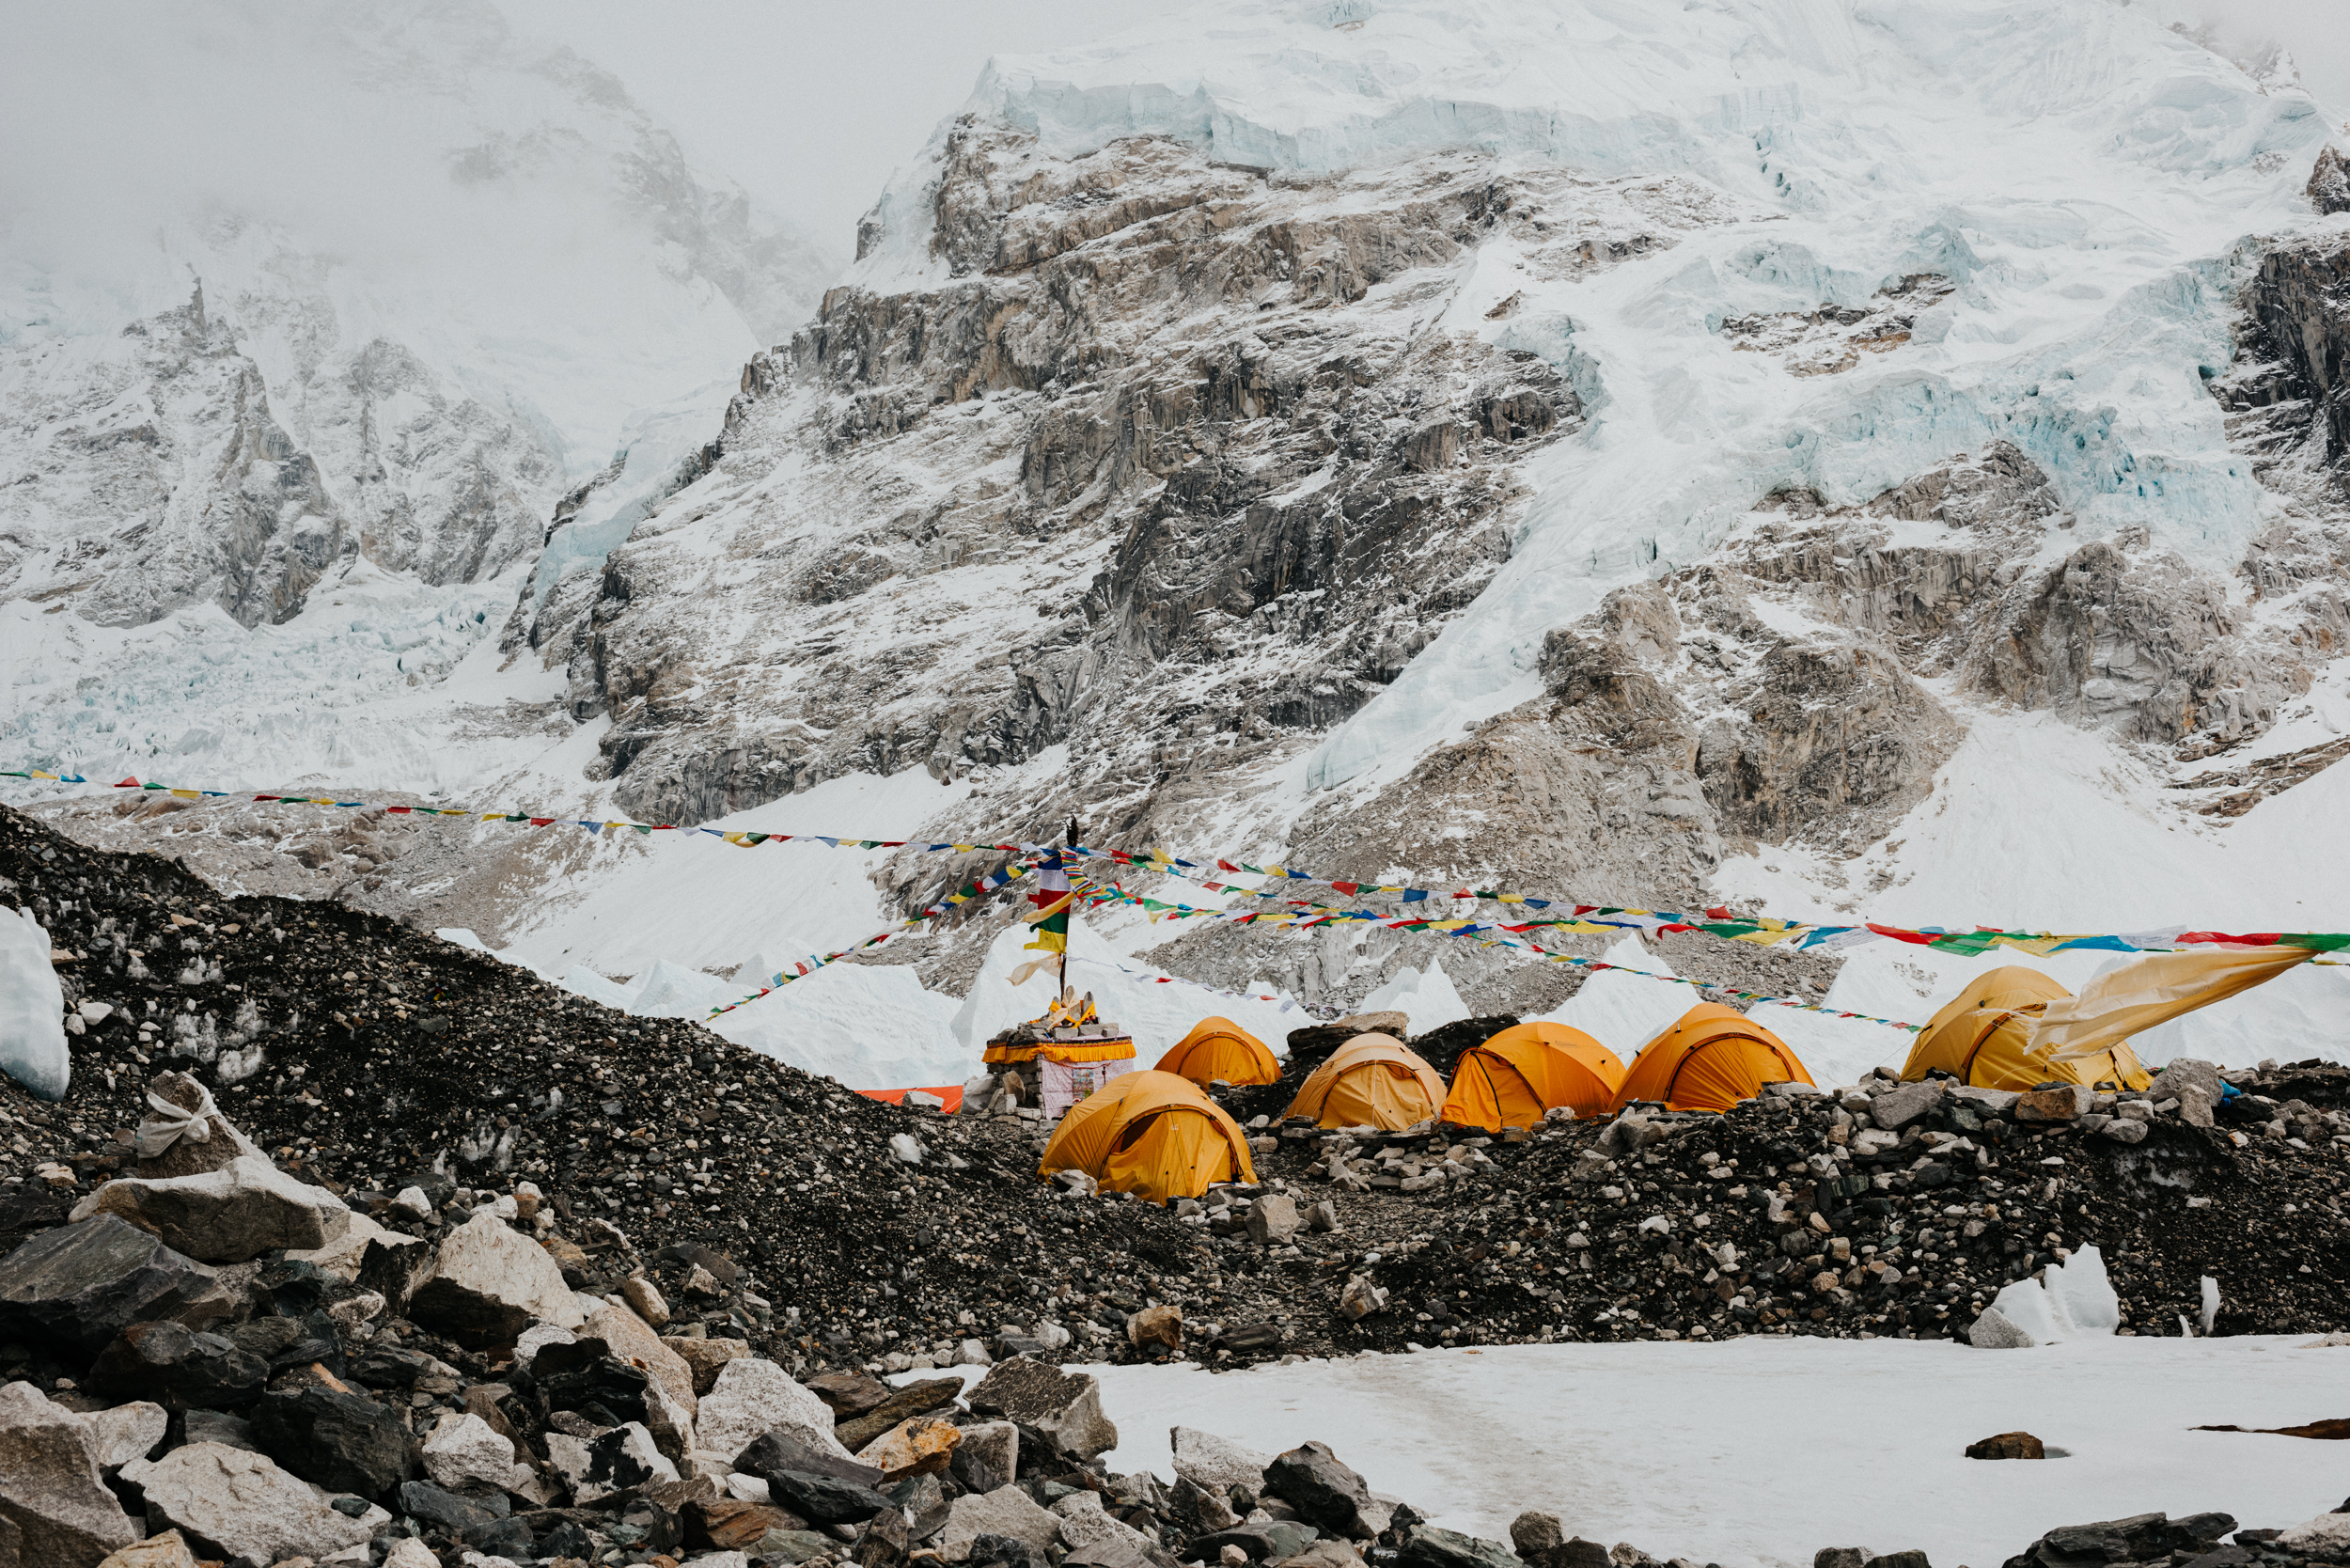 Nepal_EverestBaseCamp_2019_TaraShupe_Photography_DSC_4219.jpg